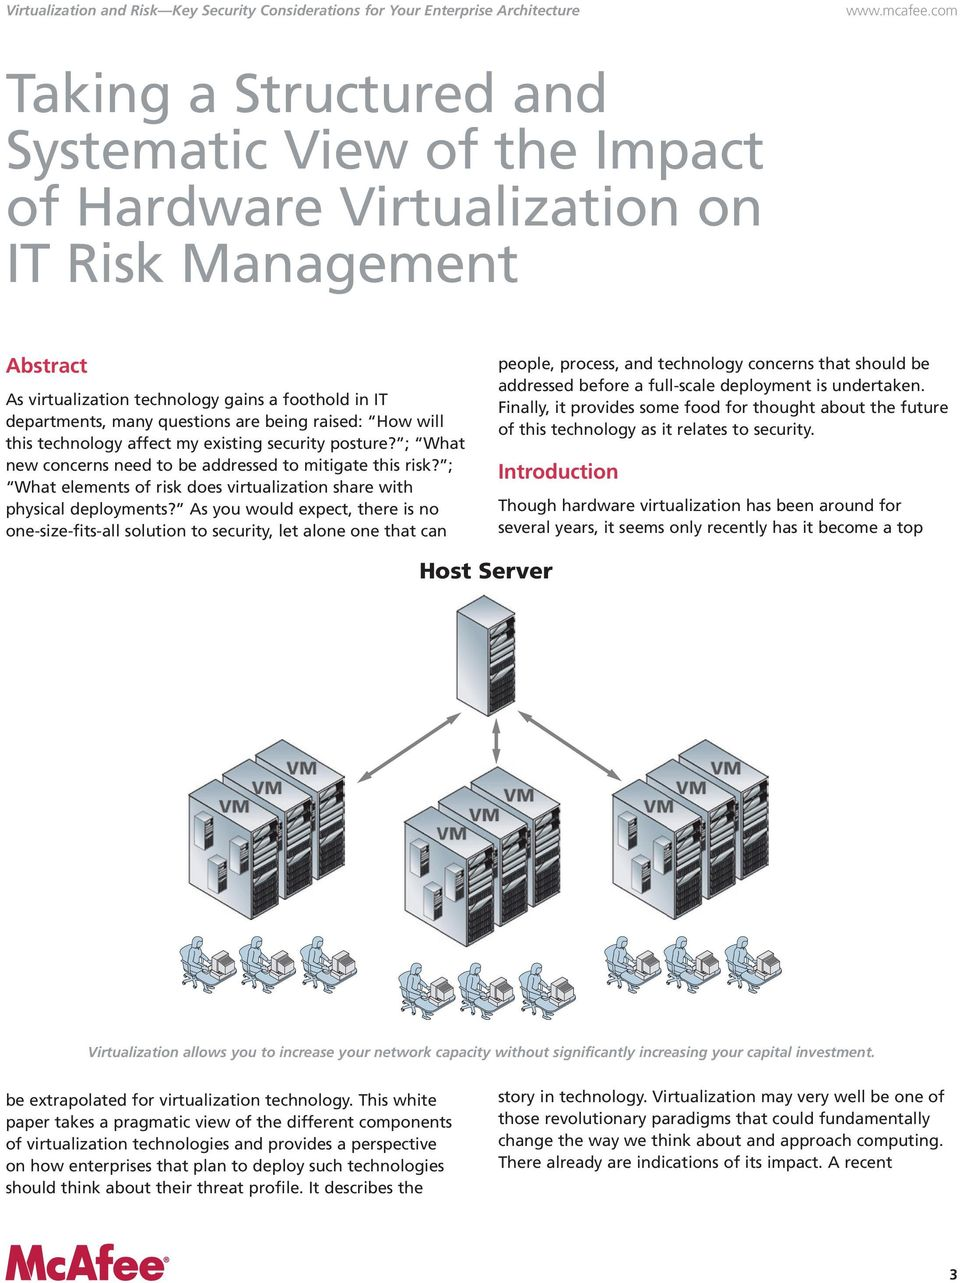 ; What elements of risk does virtualization share with physical deployments?